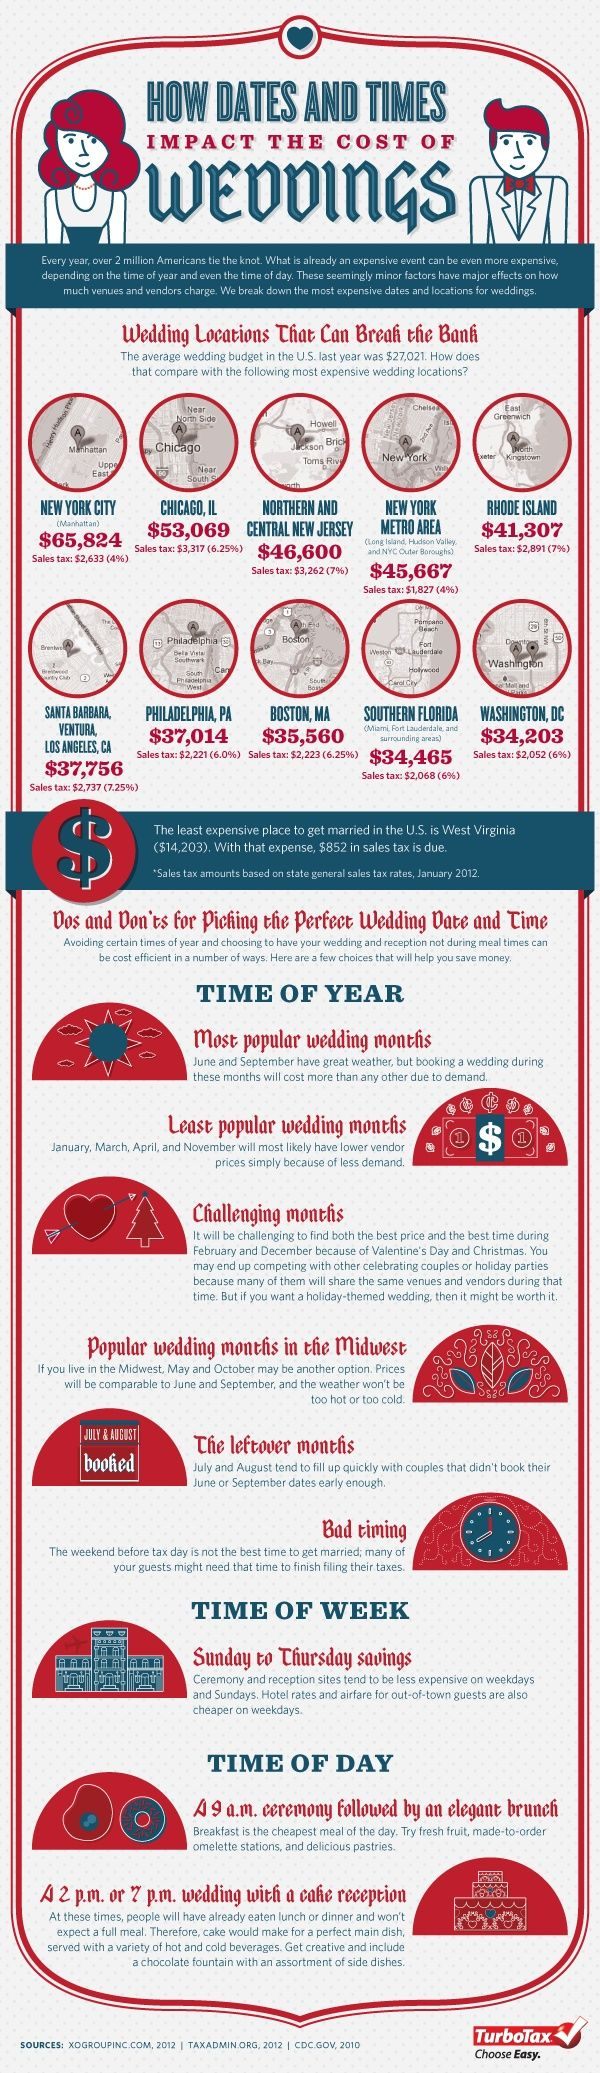 How Dates And Times Impact The Cost Of Weddings